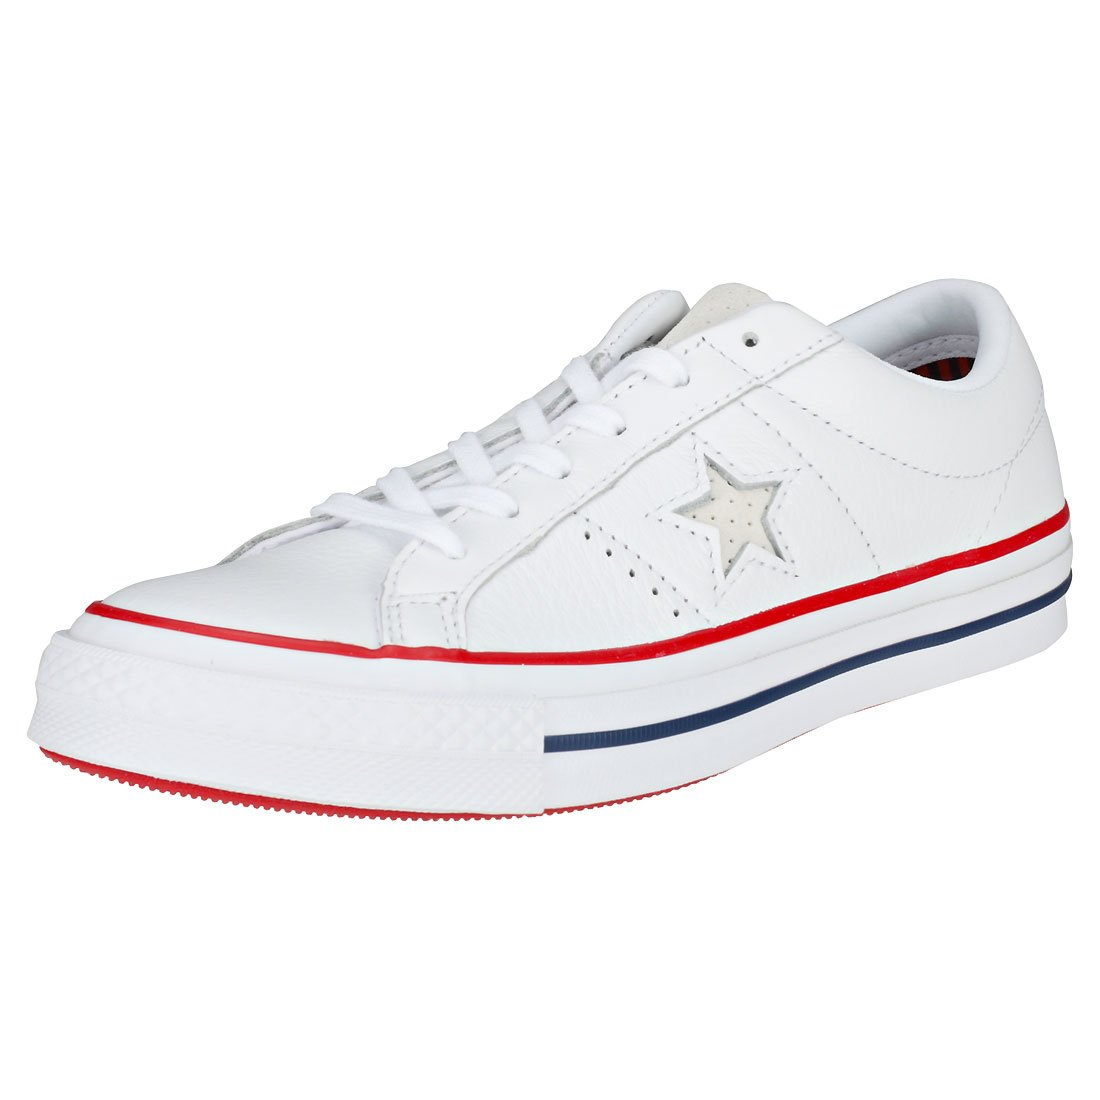 Converse Unisex Adults' Lifestyle One Star Ox Suede Fitness Shoes ...